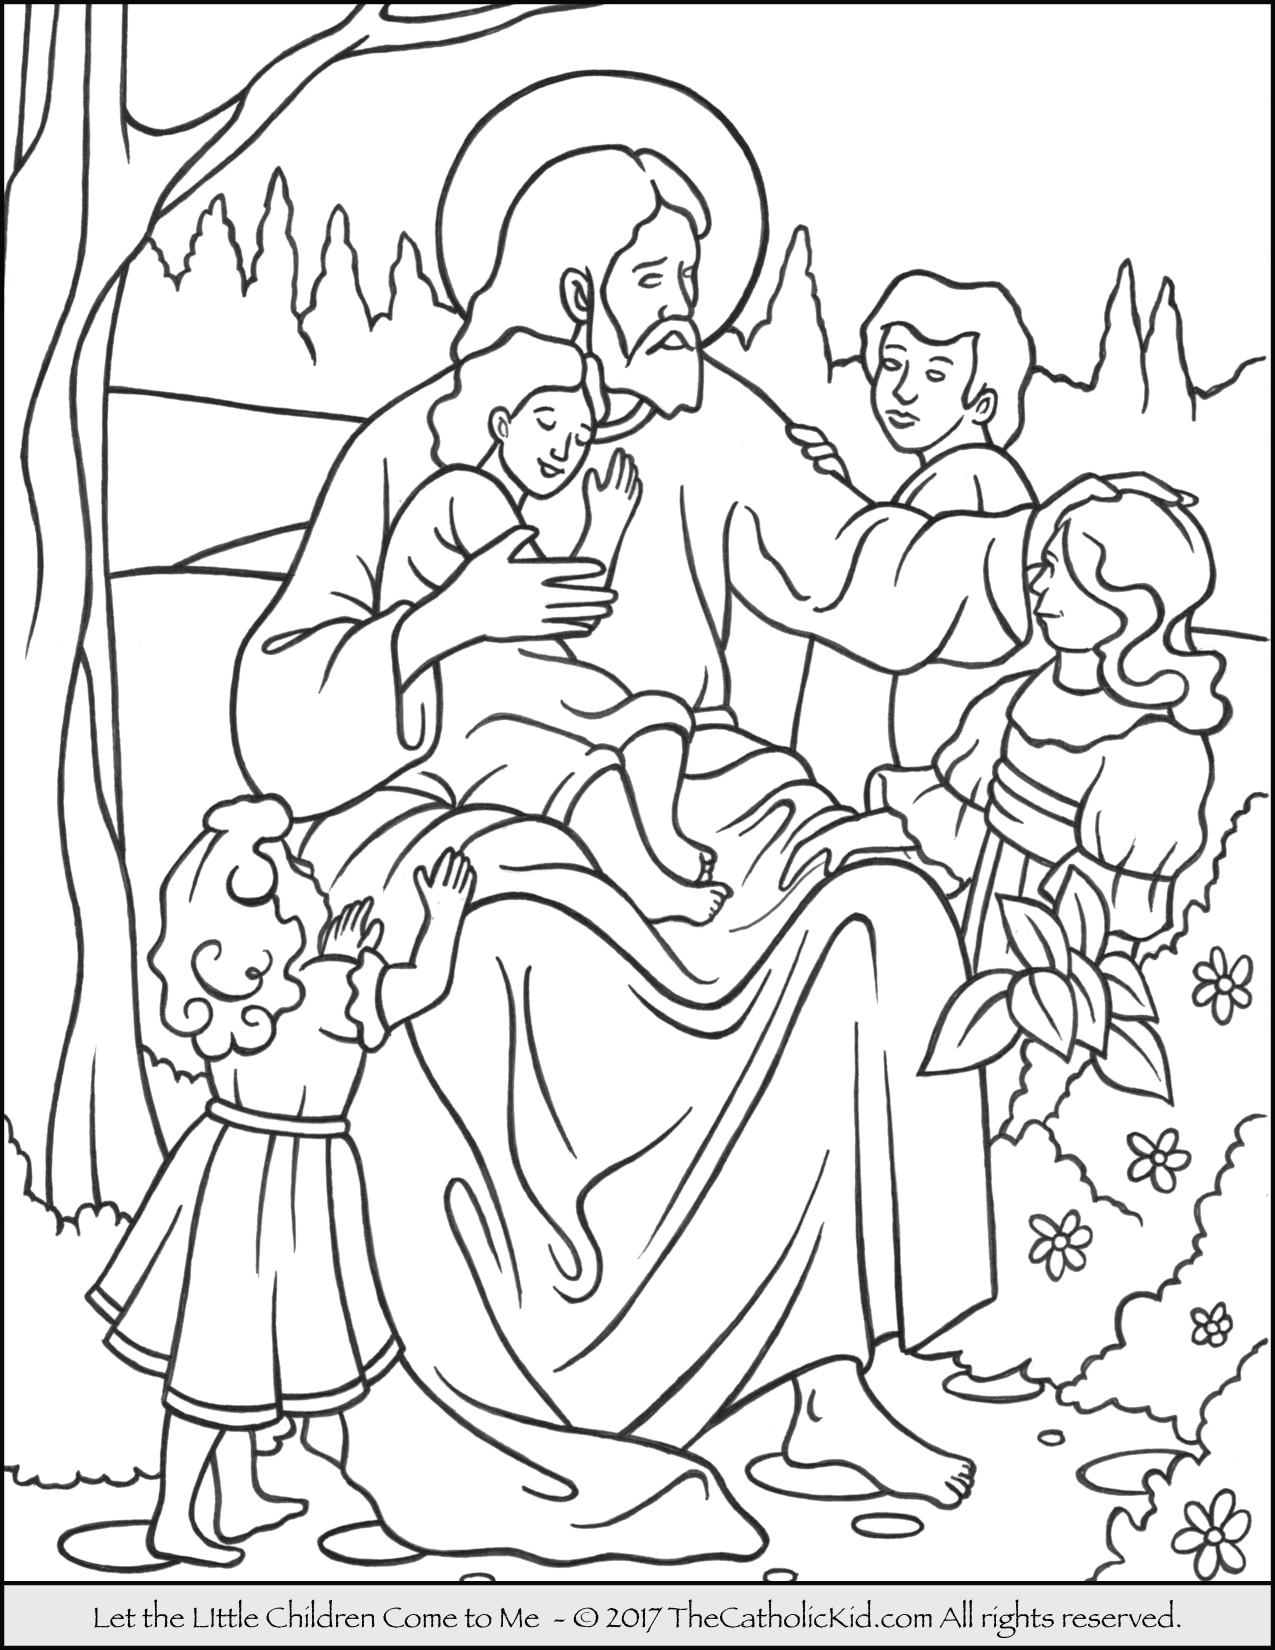 Let the Little Children Come to Me Coloring Page Jesus Let the Little Children E to Me Coloring Page